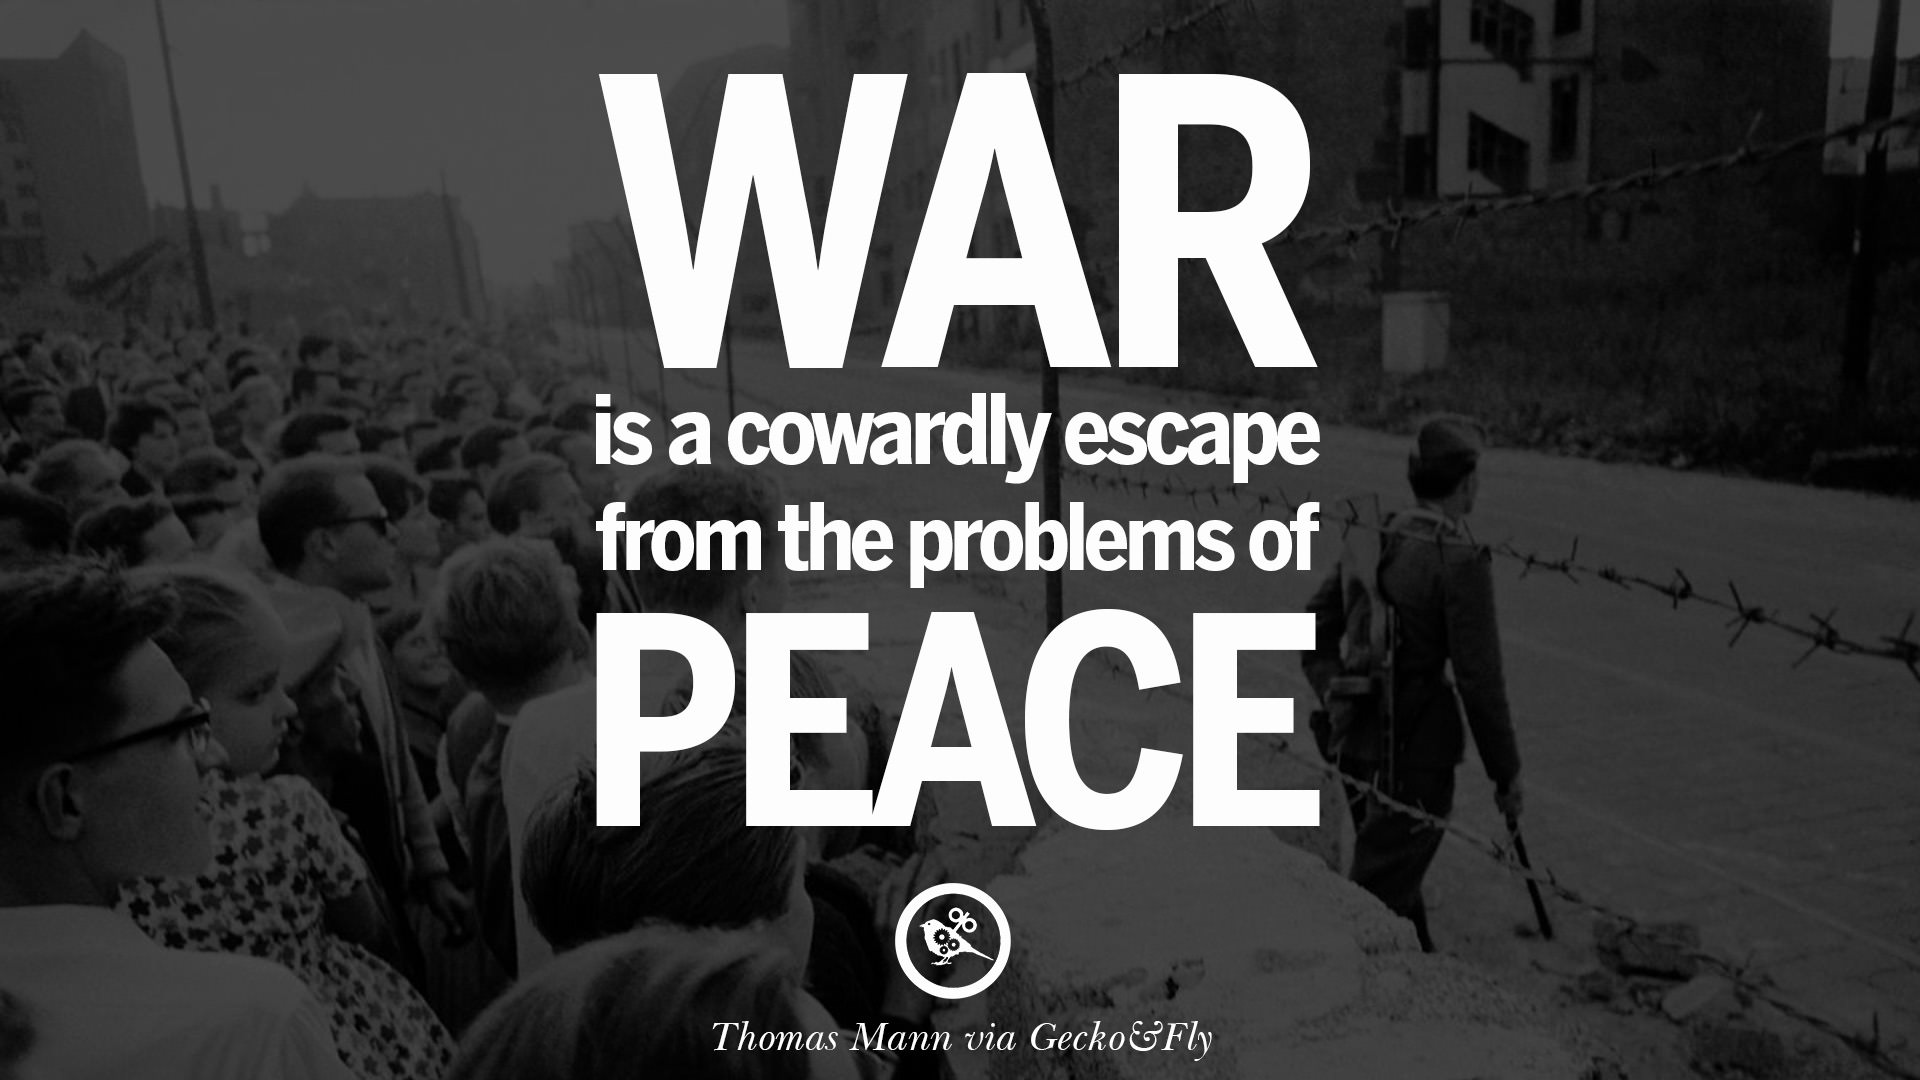 World Peace Quotes Gorgeous 10 Famous Quotes About War On World Peace Death Violence .